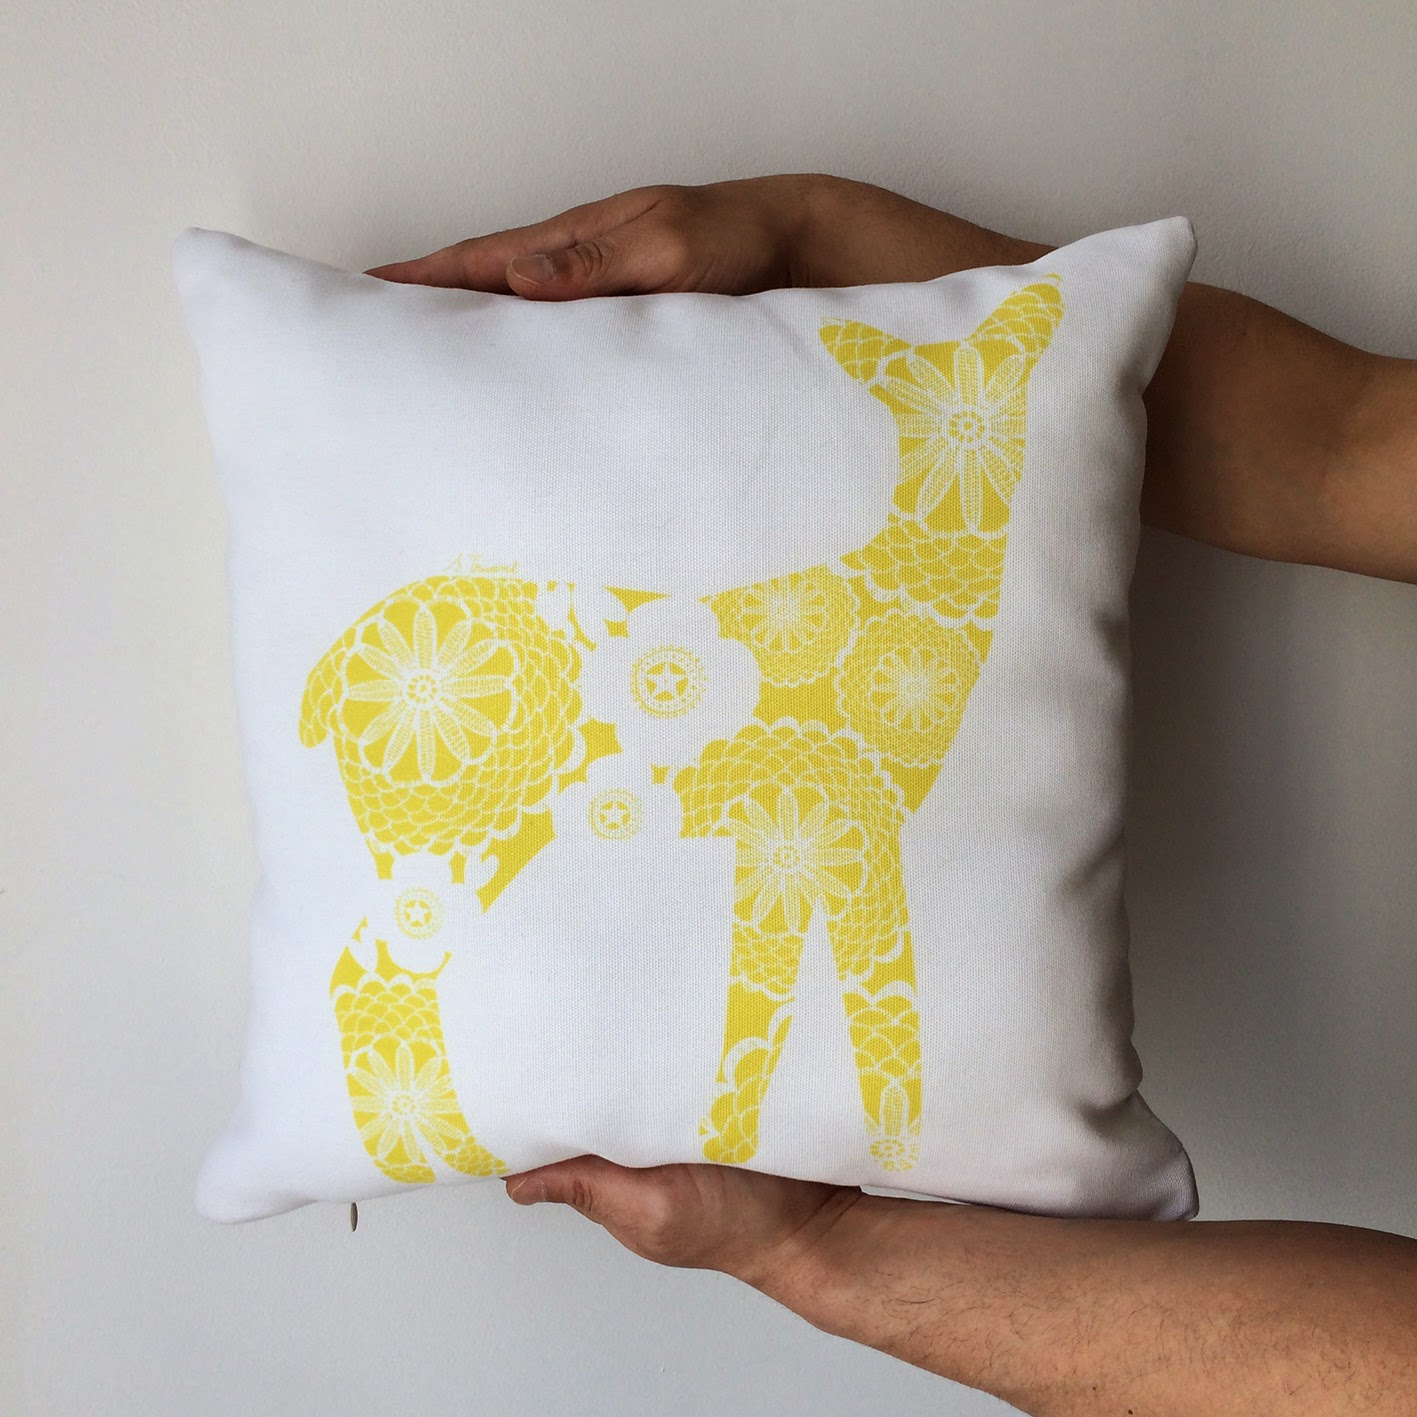 http://society6.com/stillustration/Oh-ma-biche_Pillow#25=193&18=126